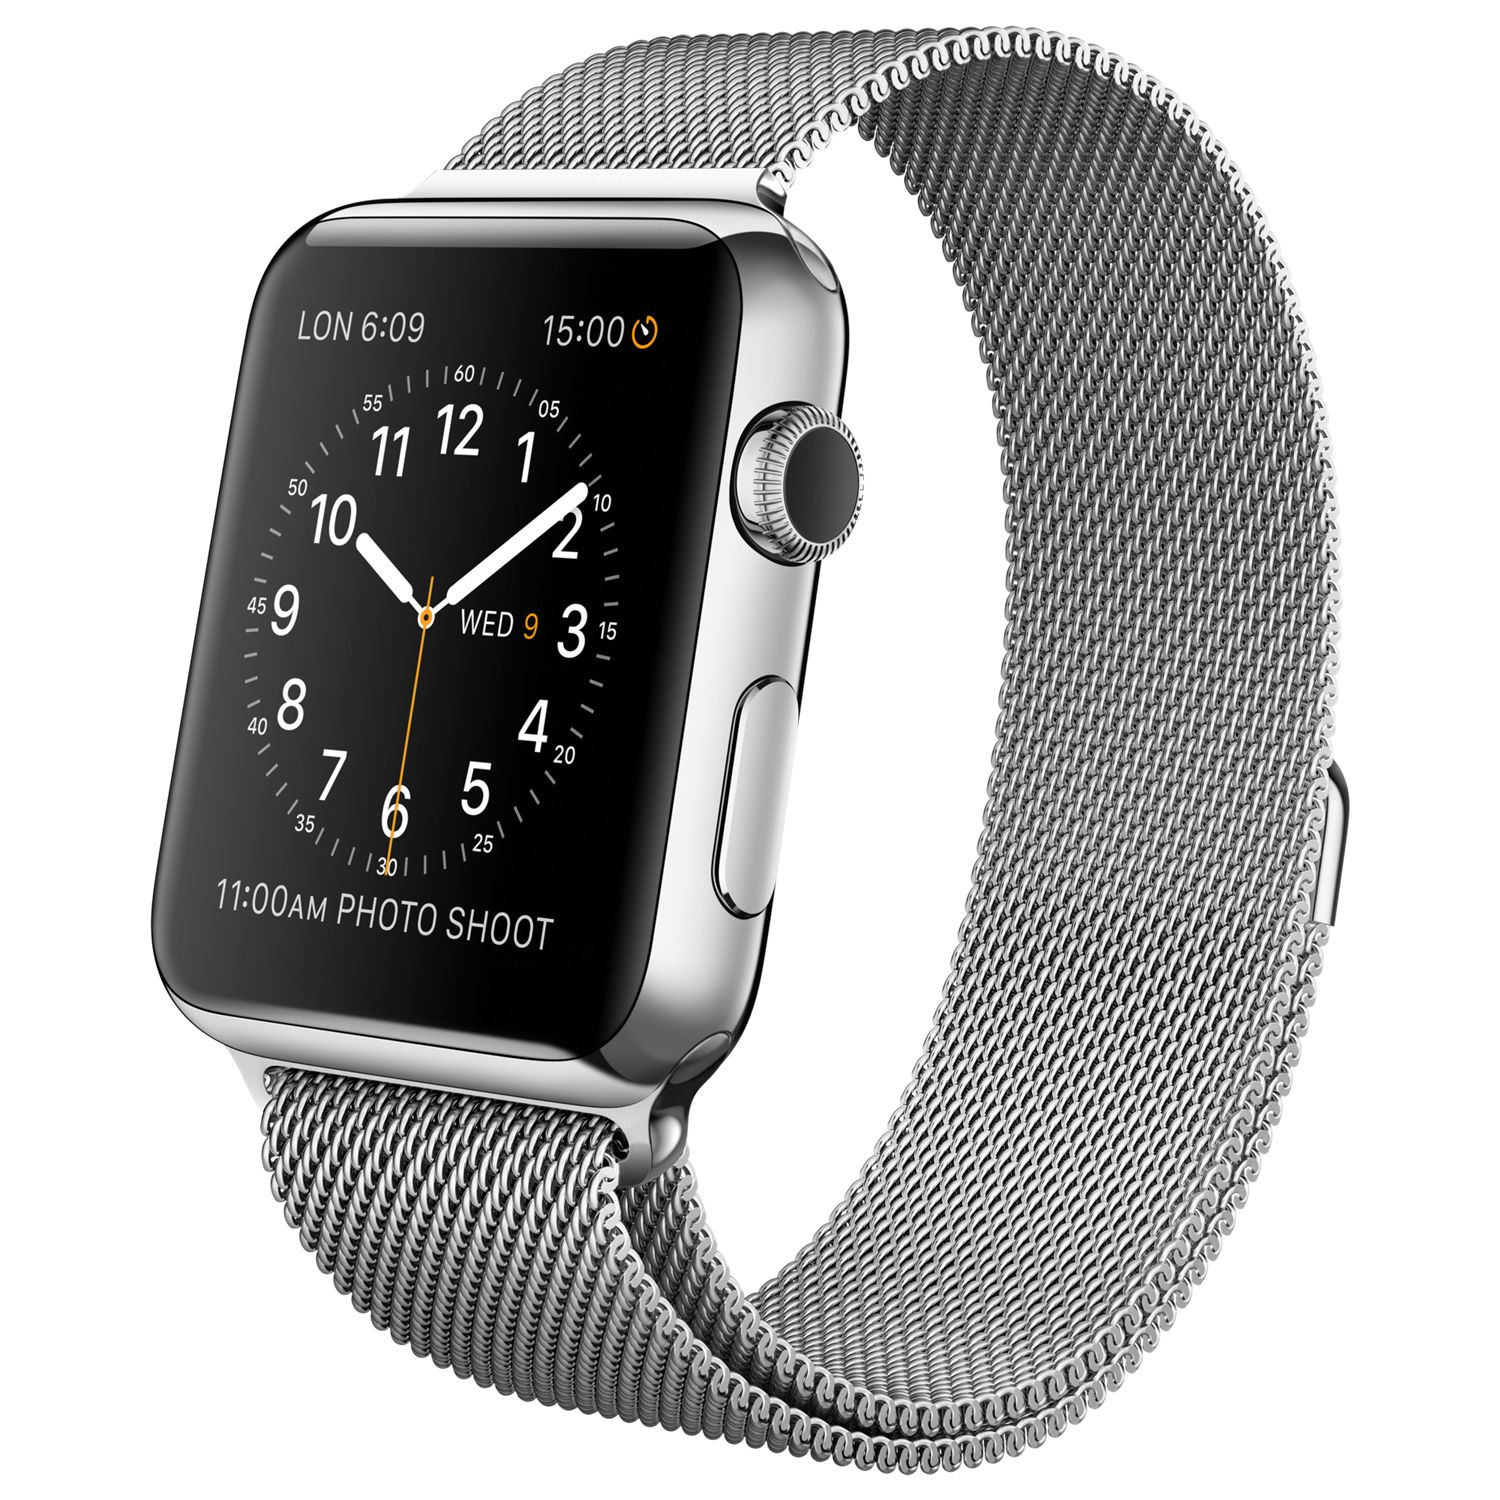 c31414fbd09 Apple Watch 42mm Stainless Steel Case with Milanese Loop http   store.apple